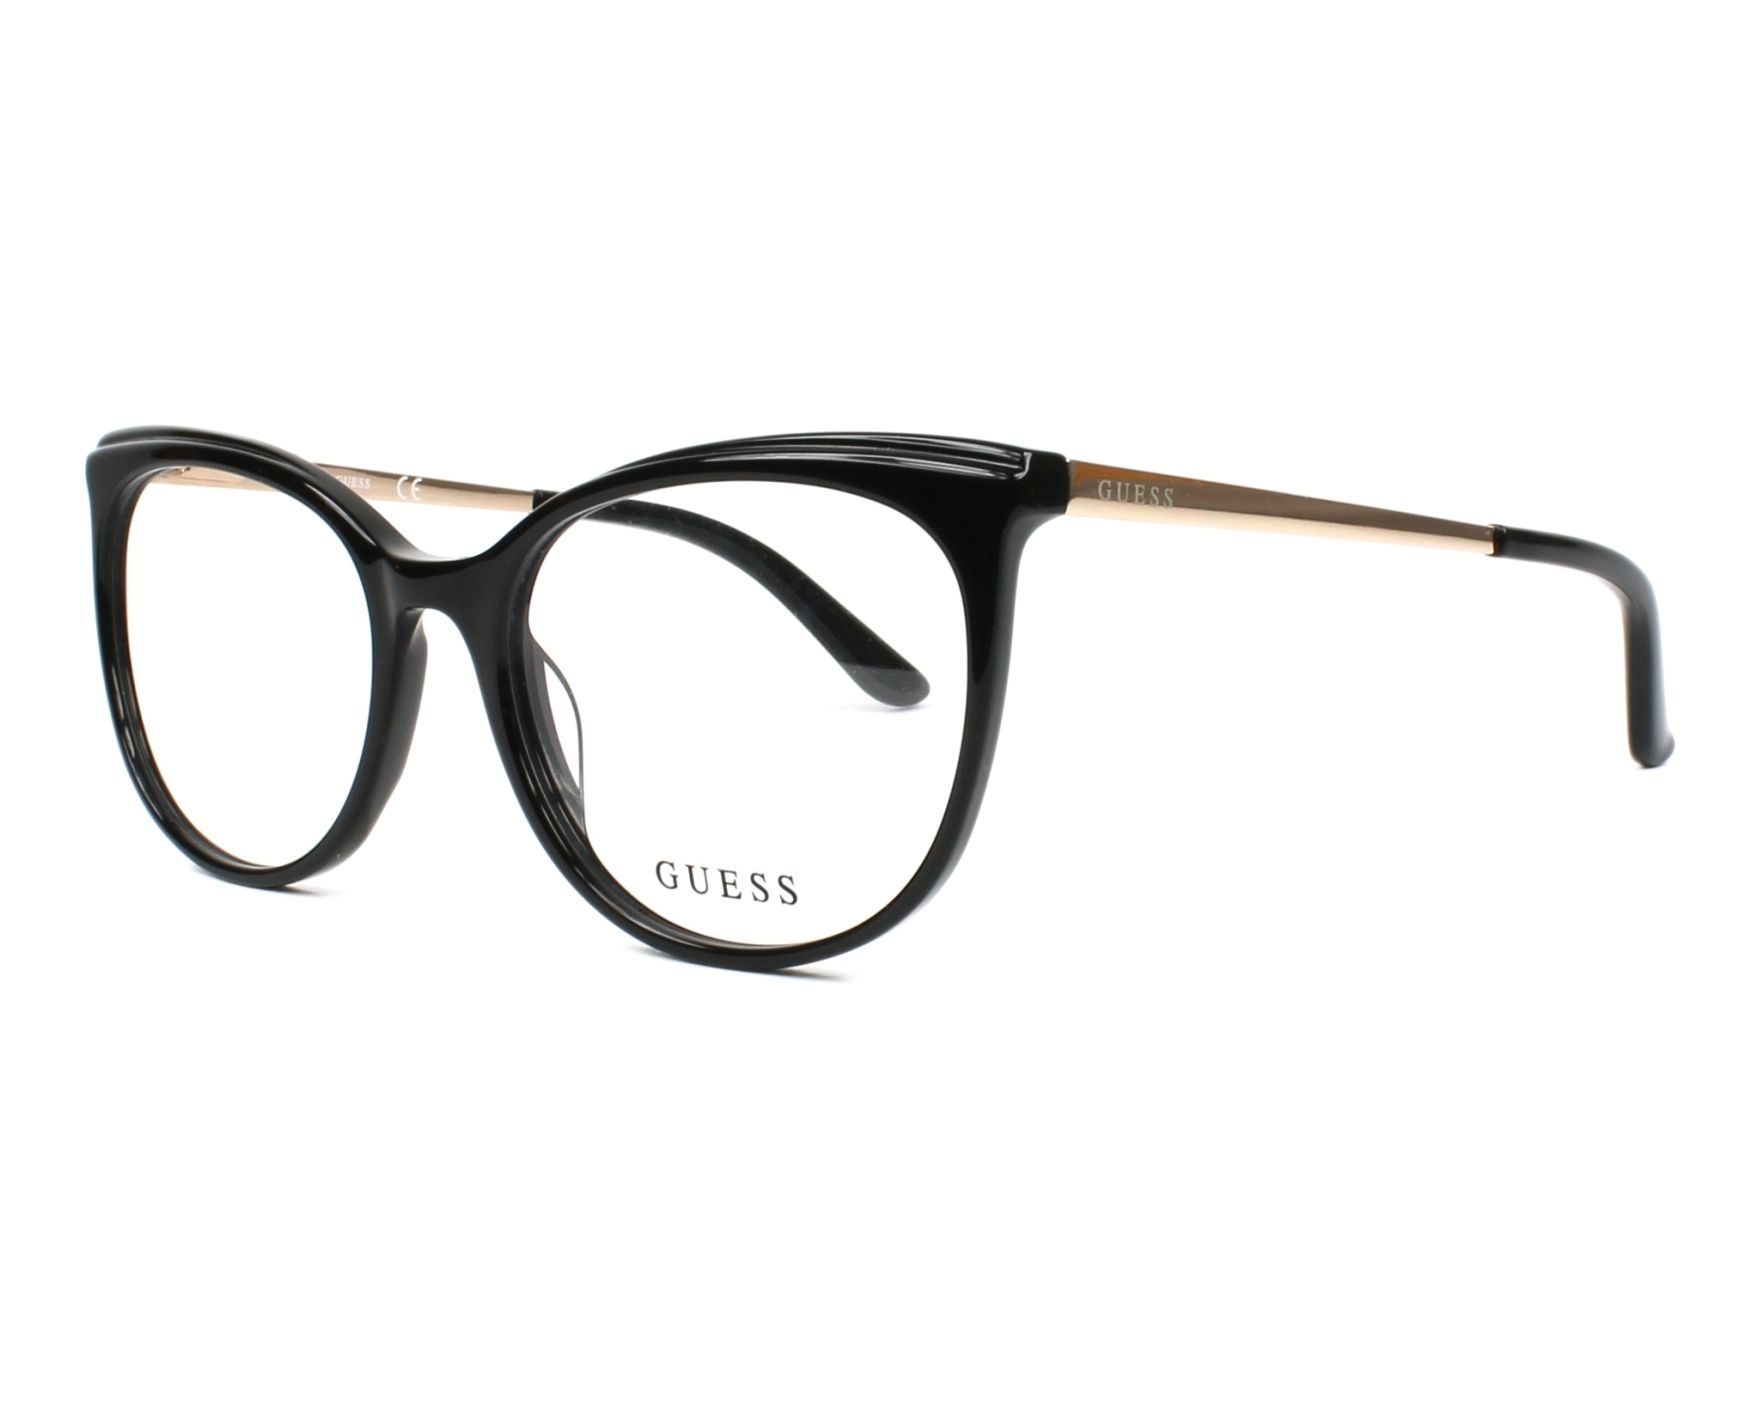 eyeglasses Guess GU-2640 005 53-17 Black Gold profile view